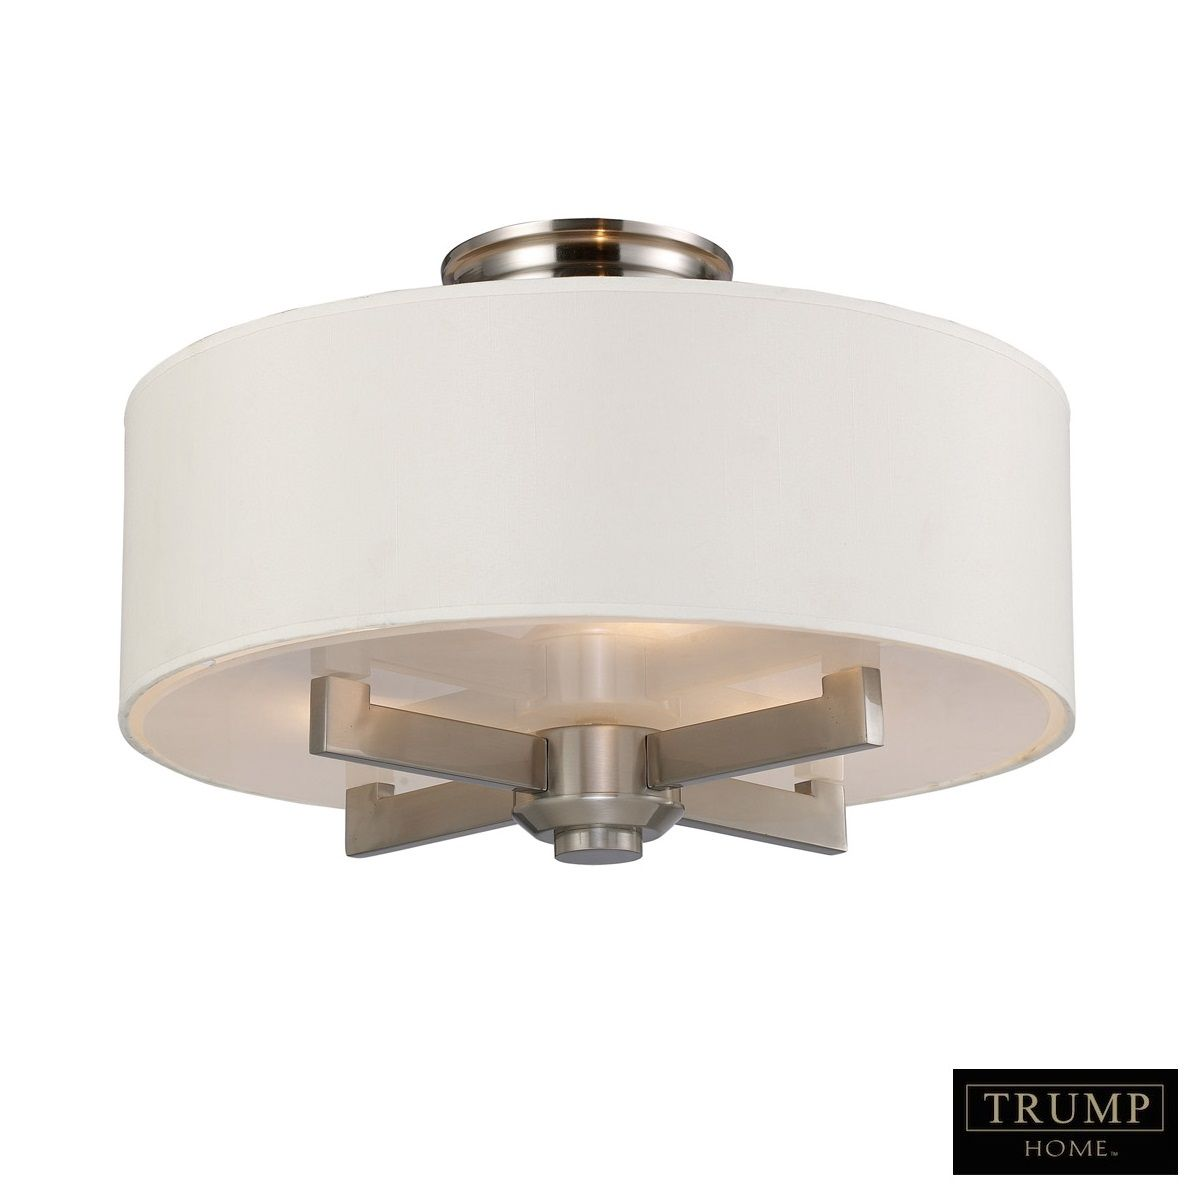 The Trump Home Seven Springs collection reflects a modern take on the traditional.